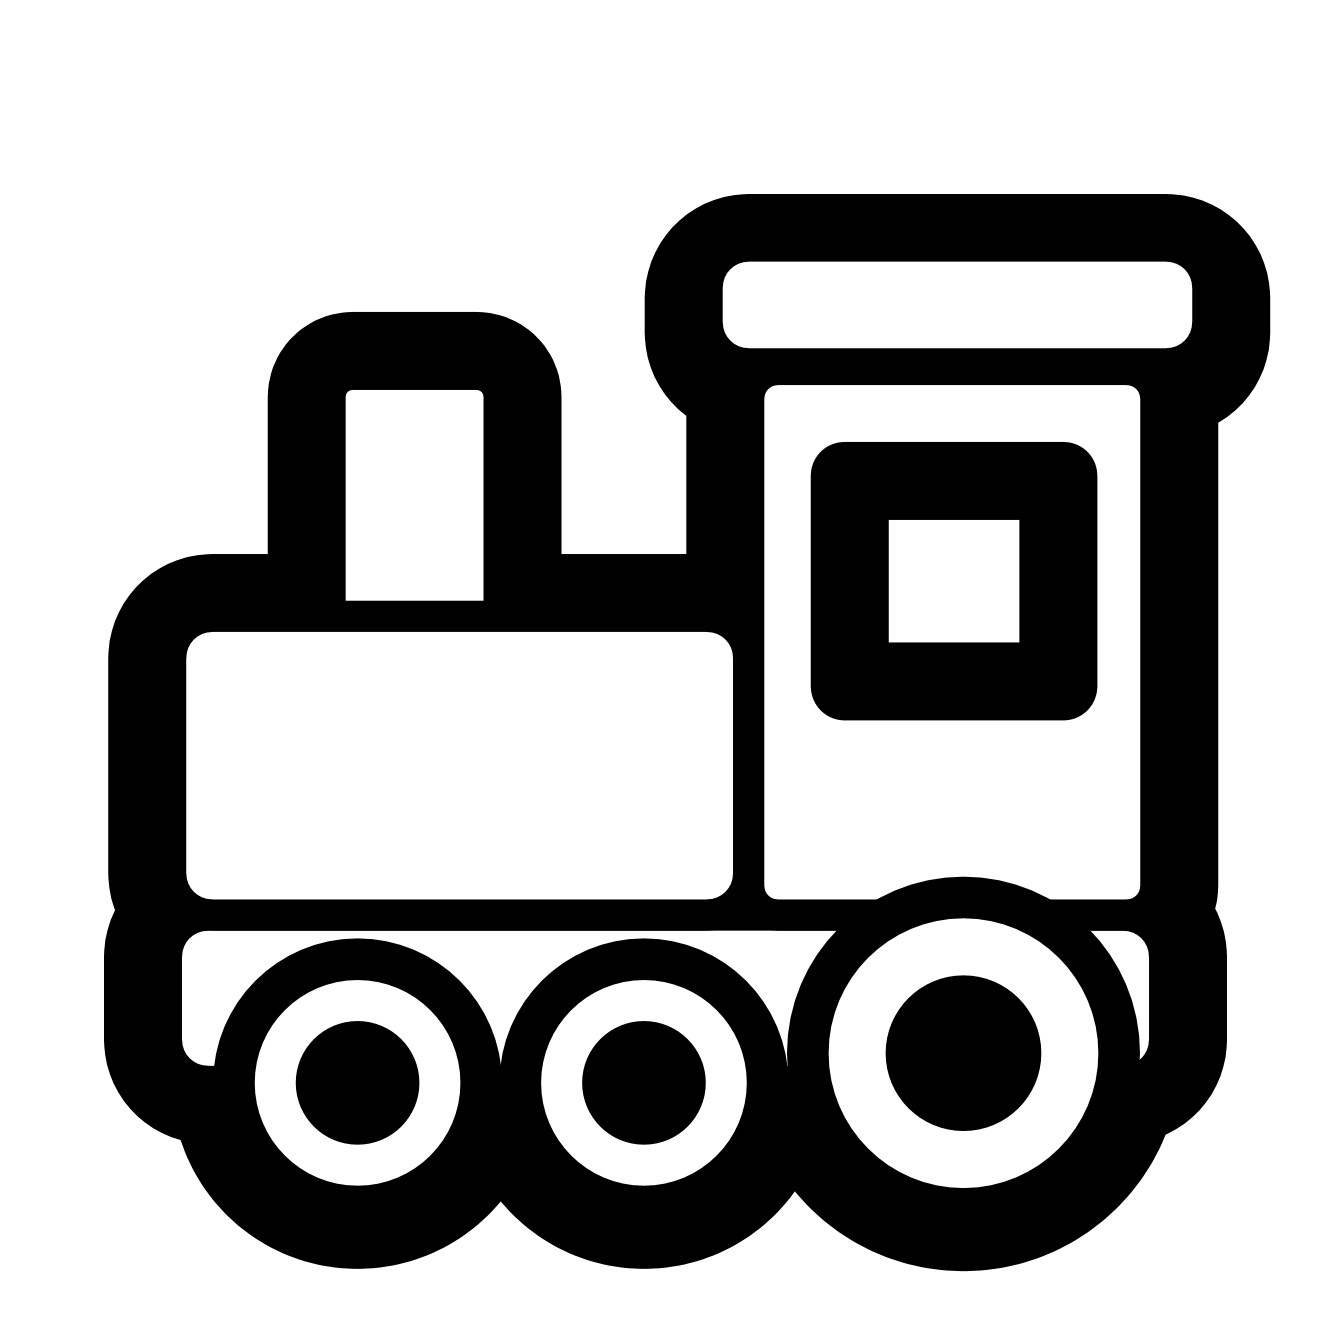 Train Clip Art Free For Kids - Free Clipart Images